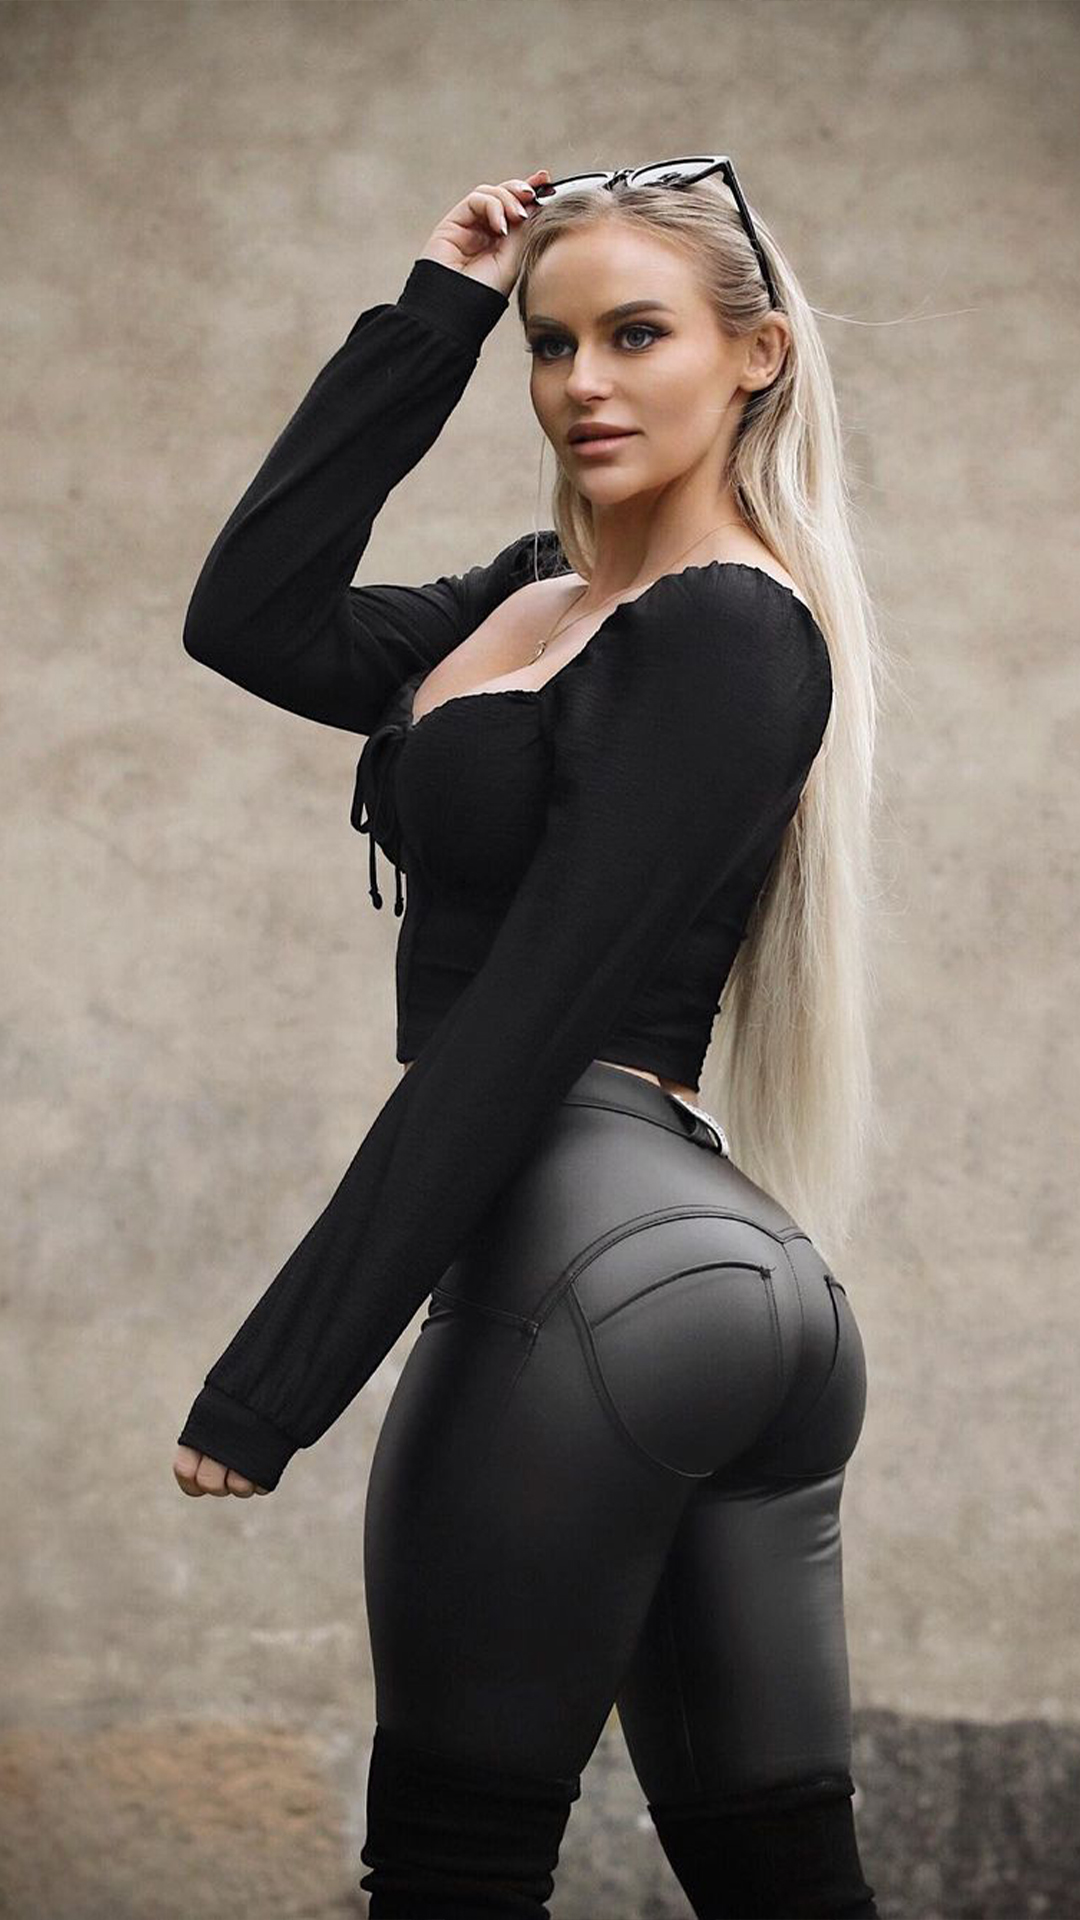 Anna Nystrom Background Wallpapers Download